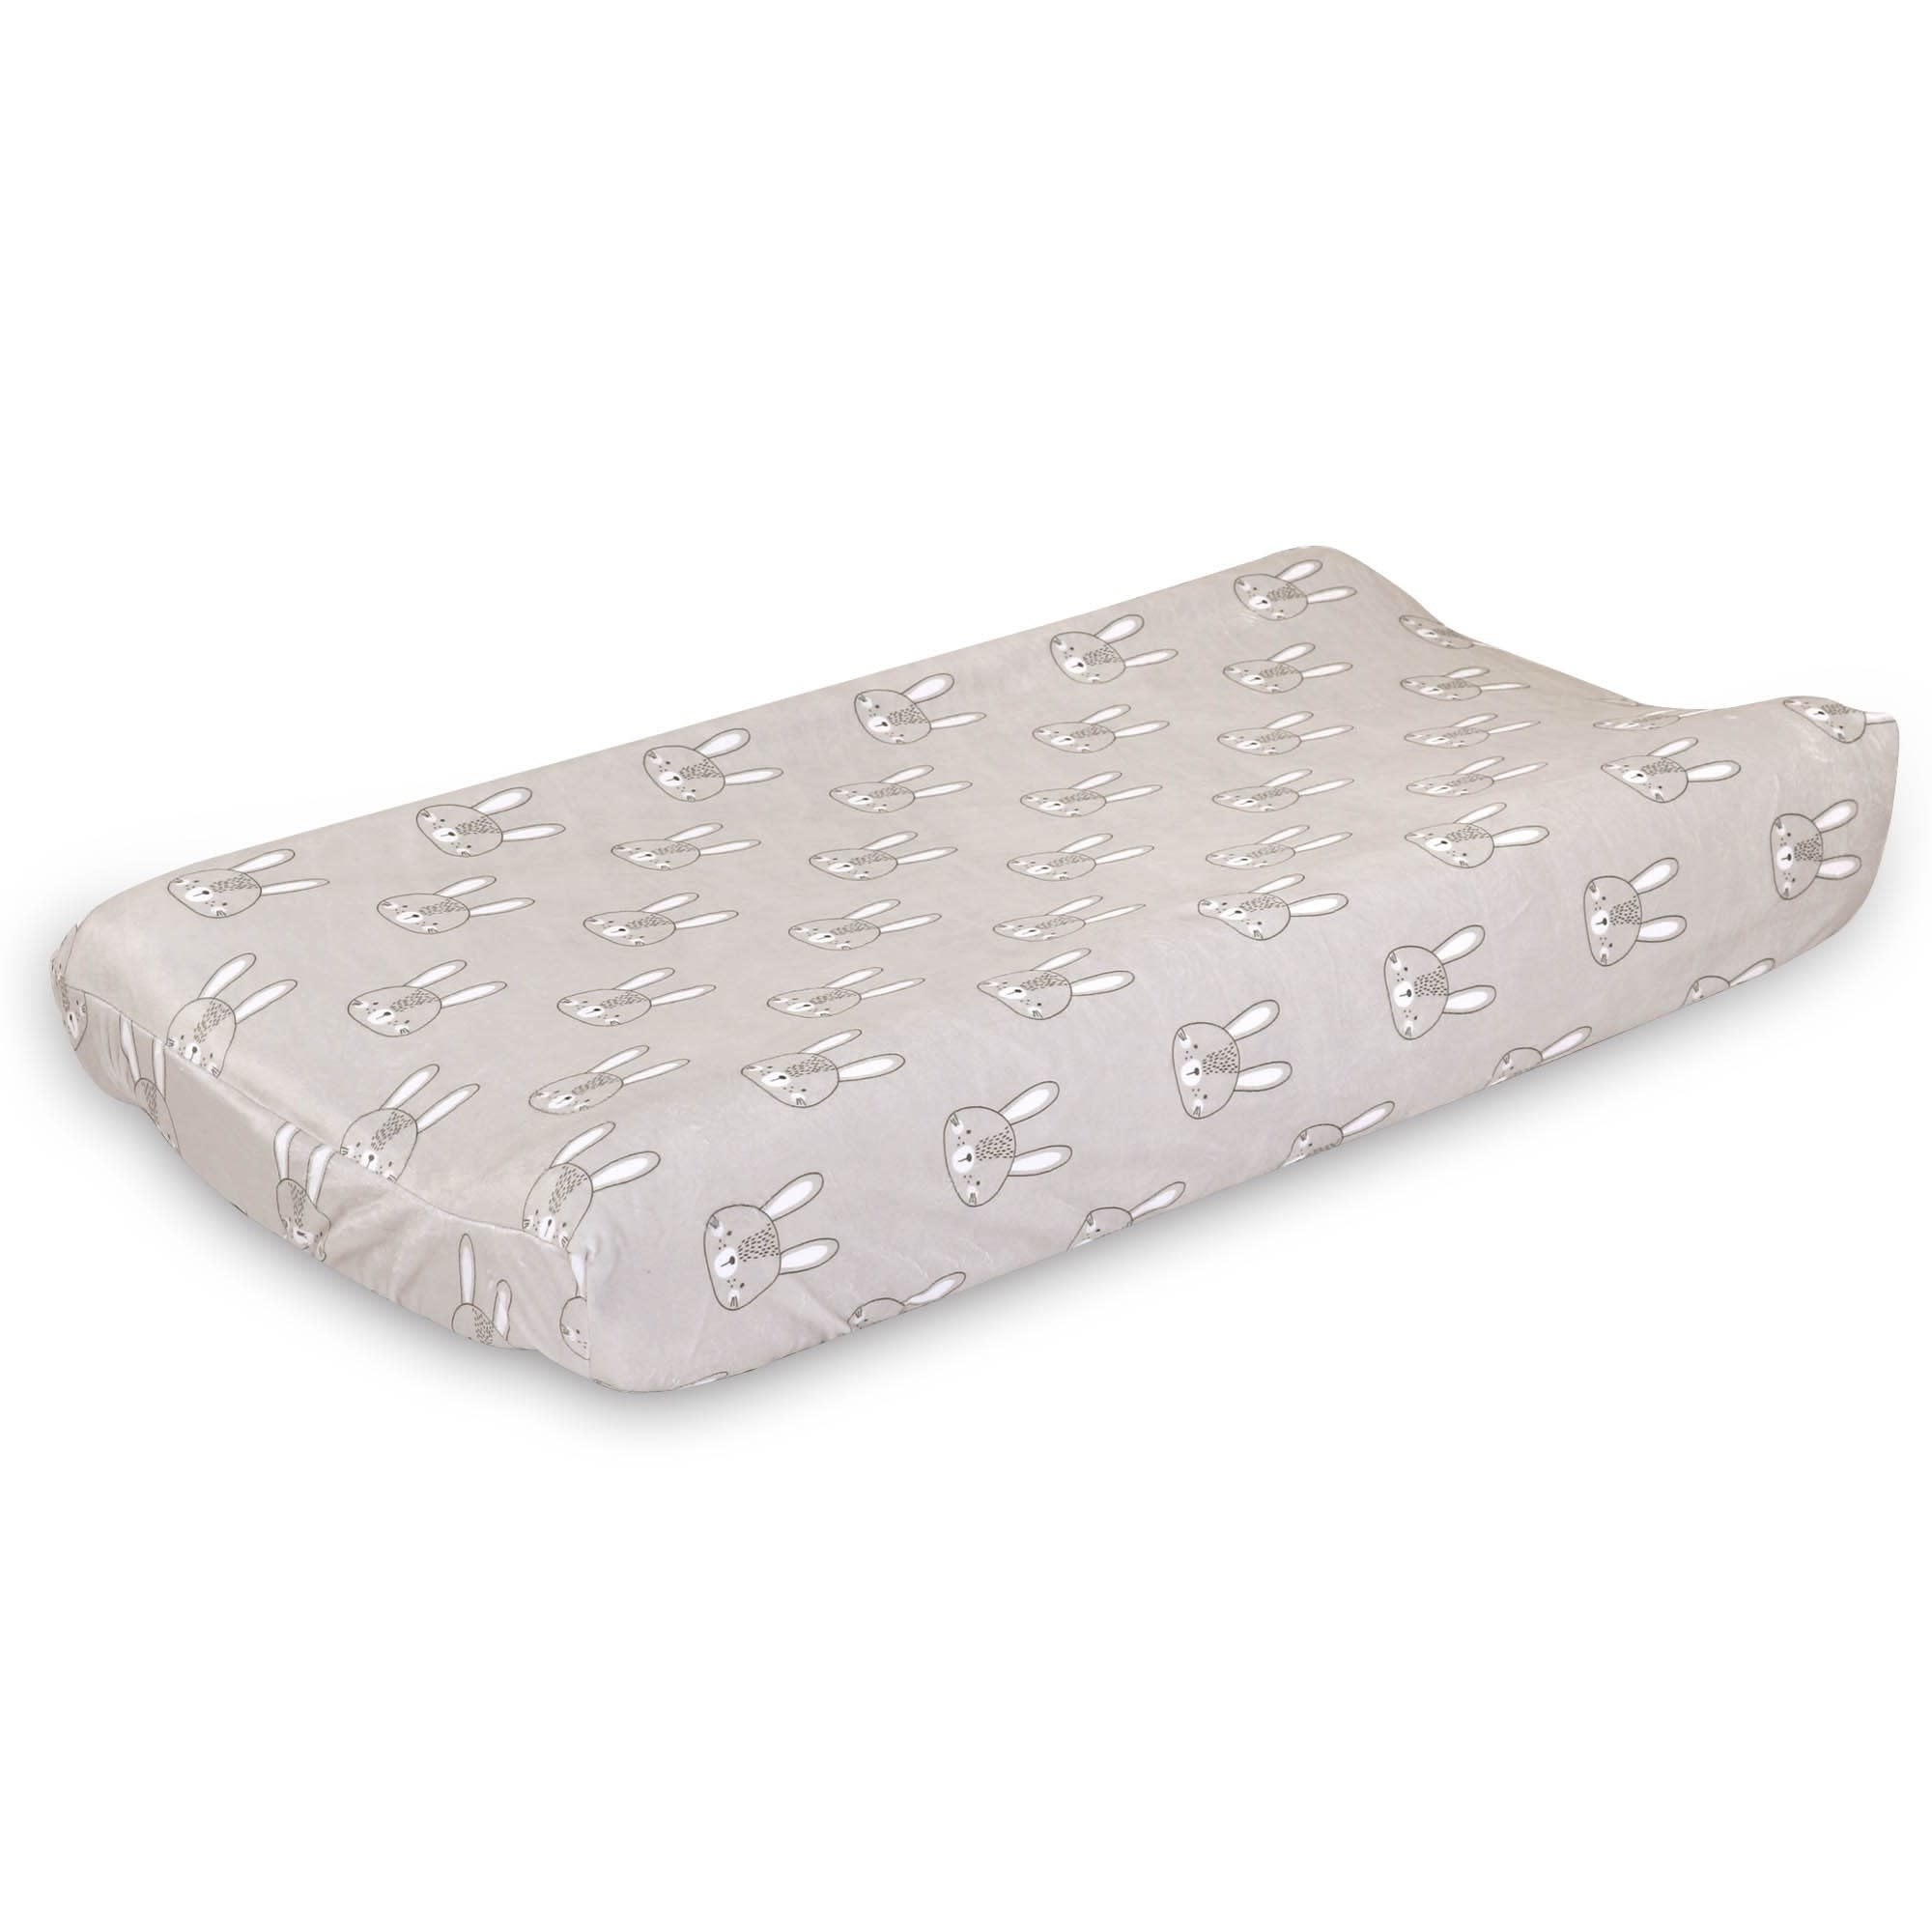 The Peanut Shell Peanut Shell Pepper Changing Pad Cover